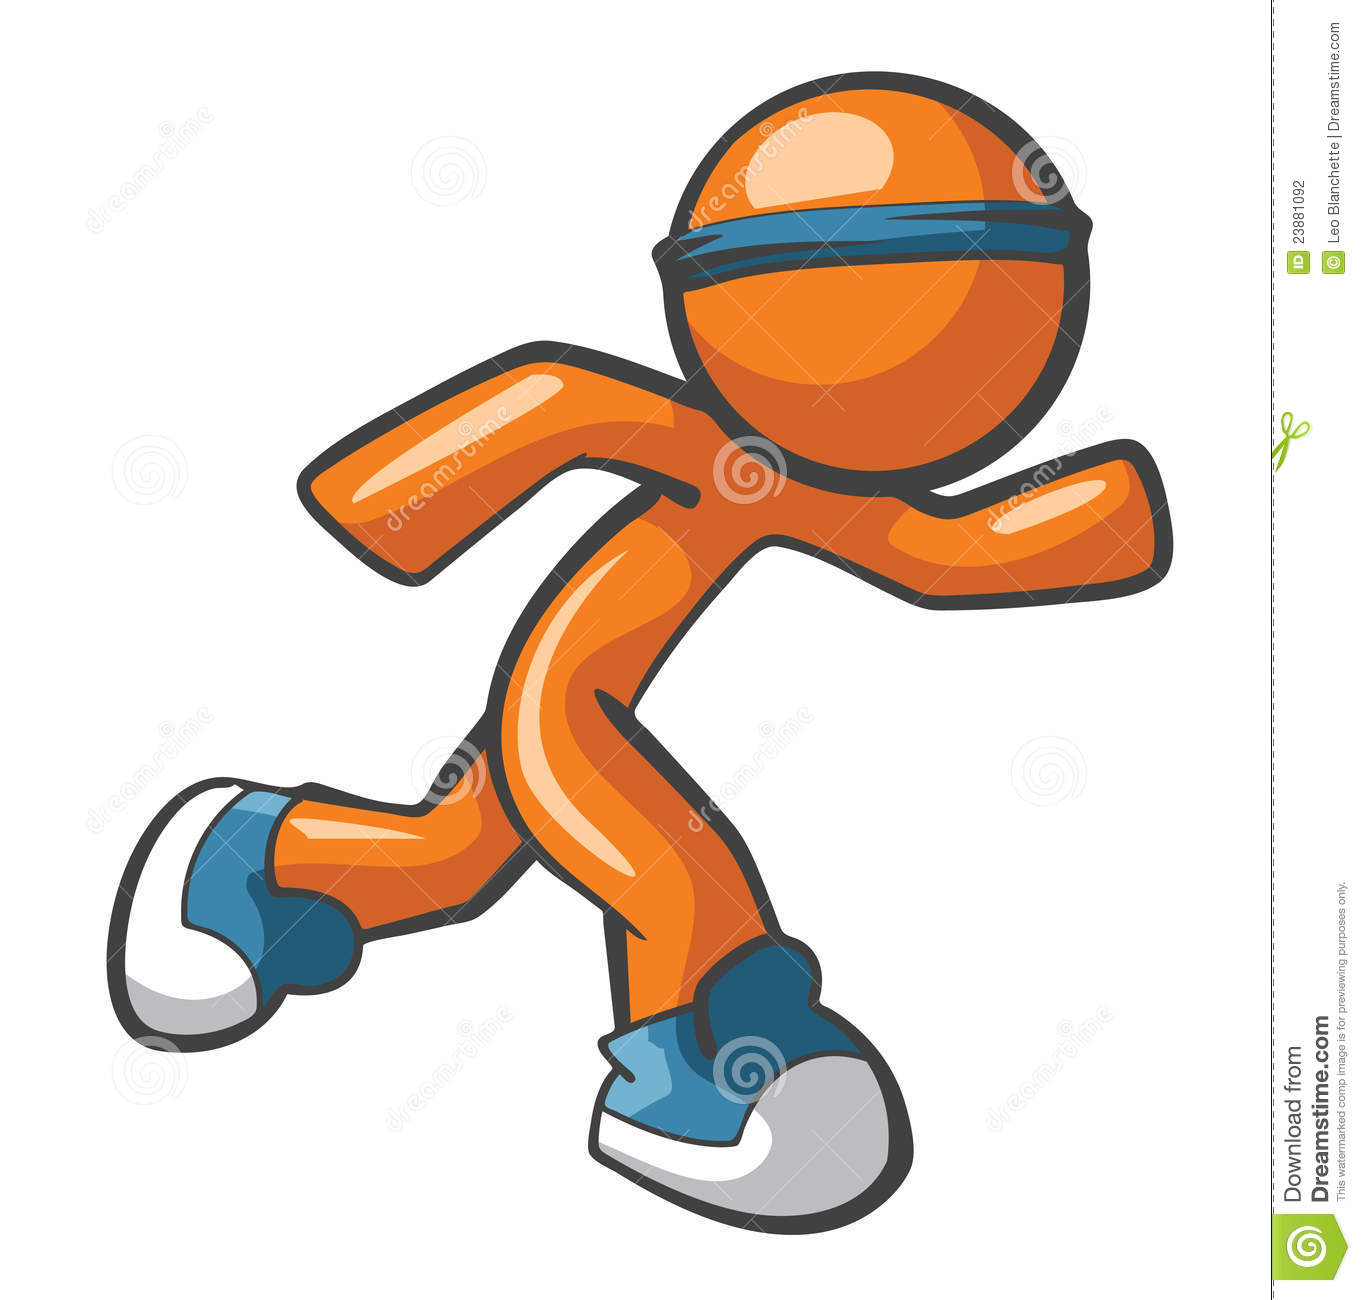 6 foot man clipart clipart images gallery for free download.